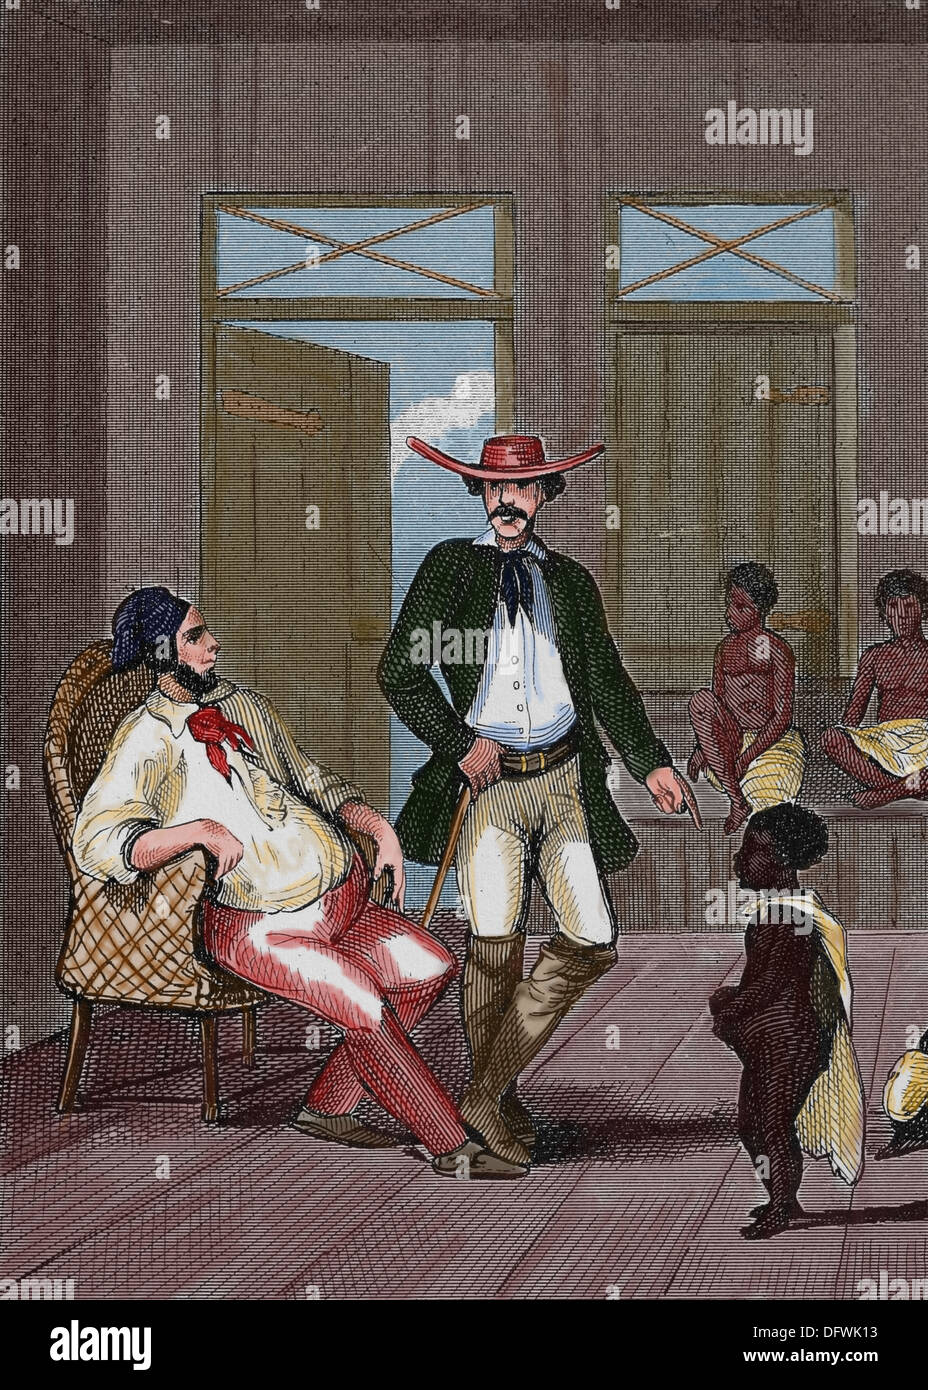 Brazilian slave trade. Colored engraving. 19th century. - Stock Image